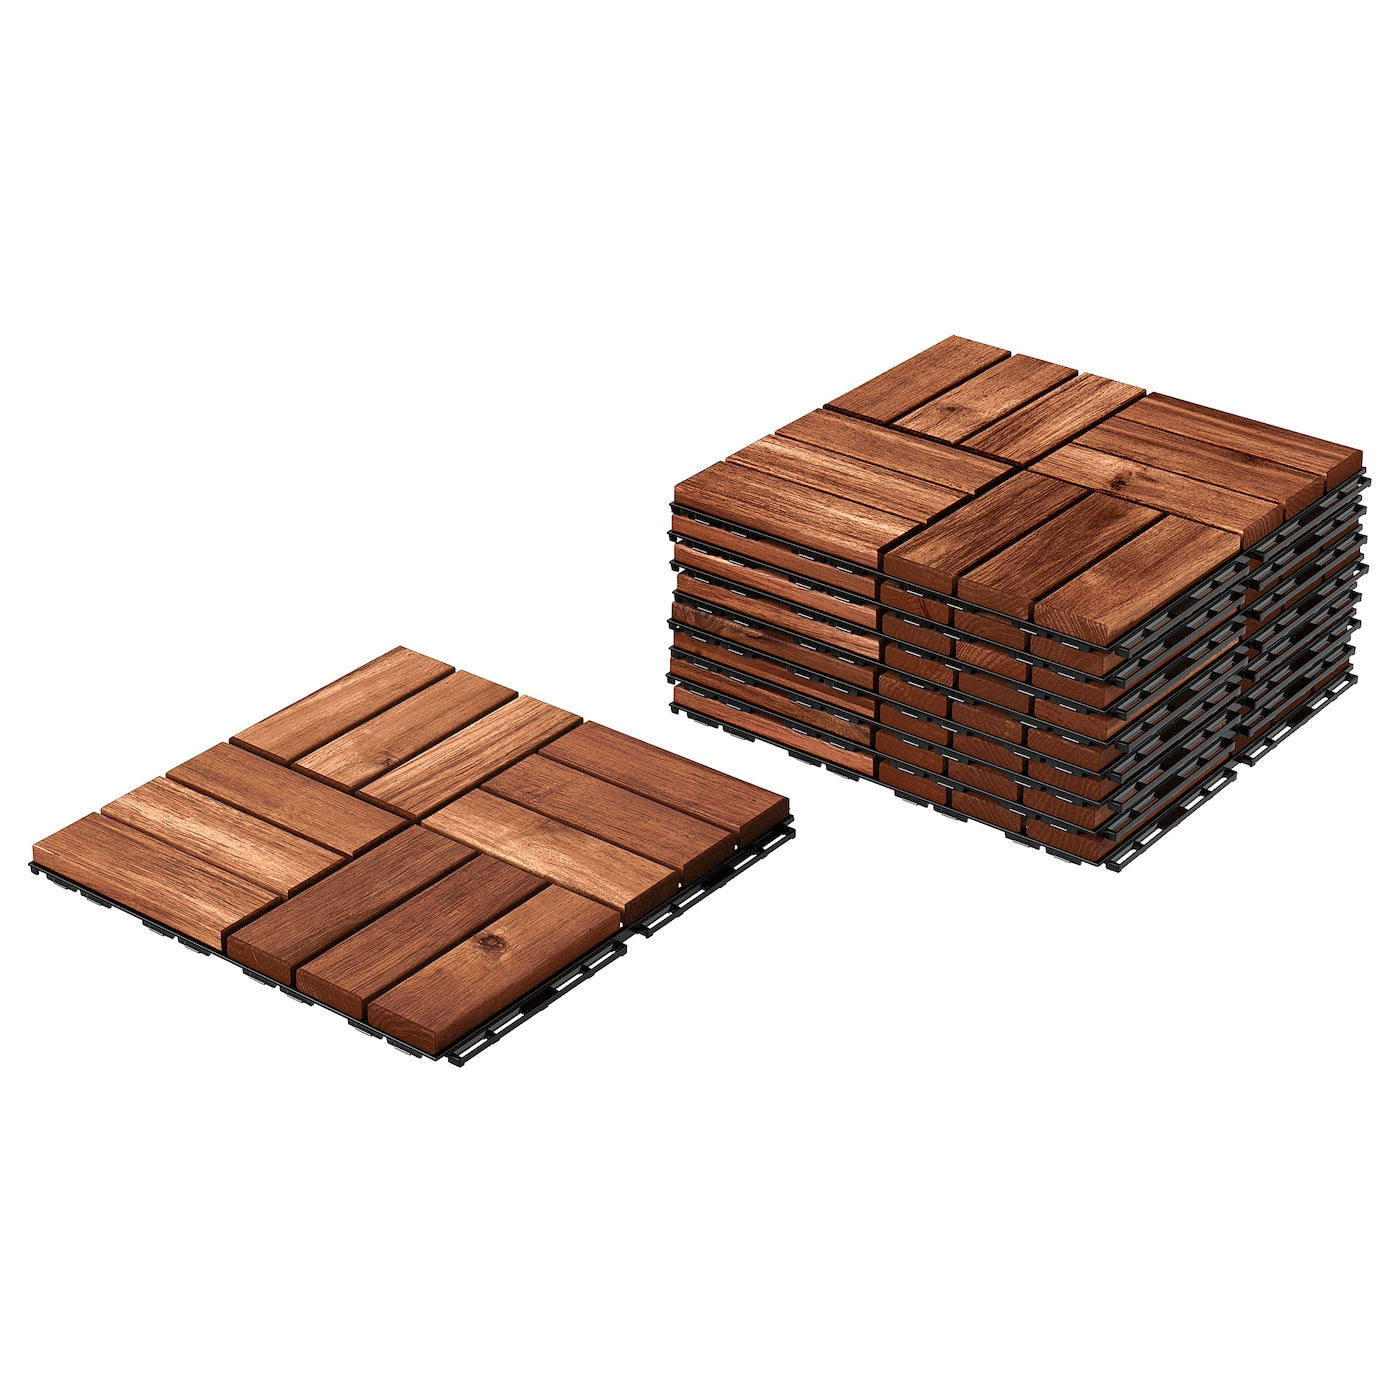 IKEA RUNNEN floor decking, outdoor Floor decking makes it easy to refresh your terrace or balcony.